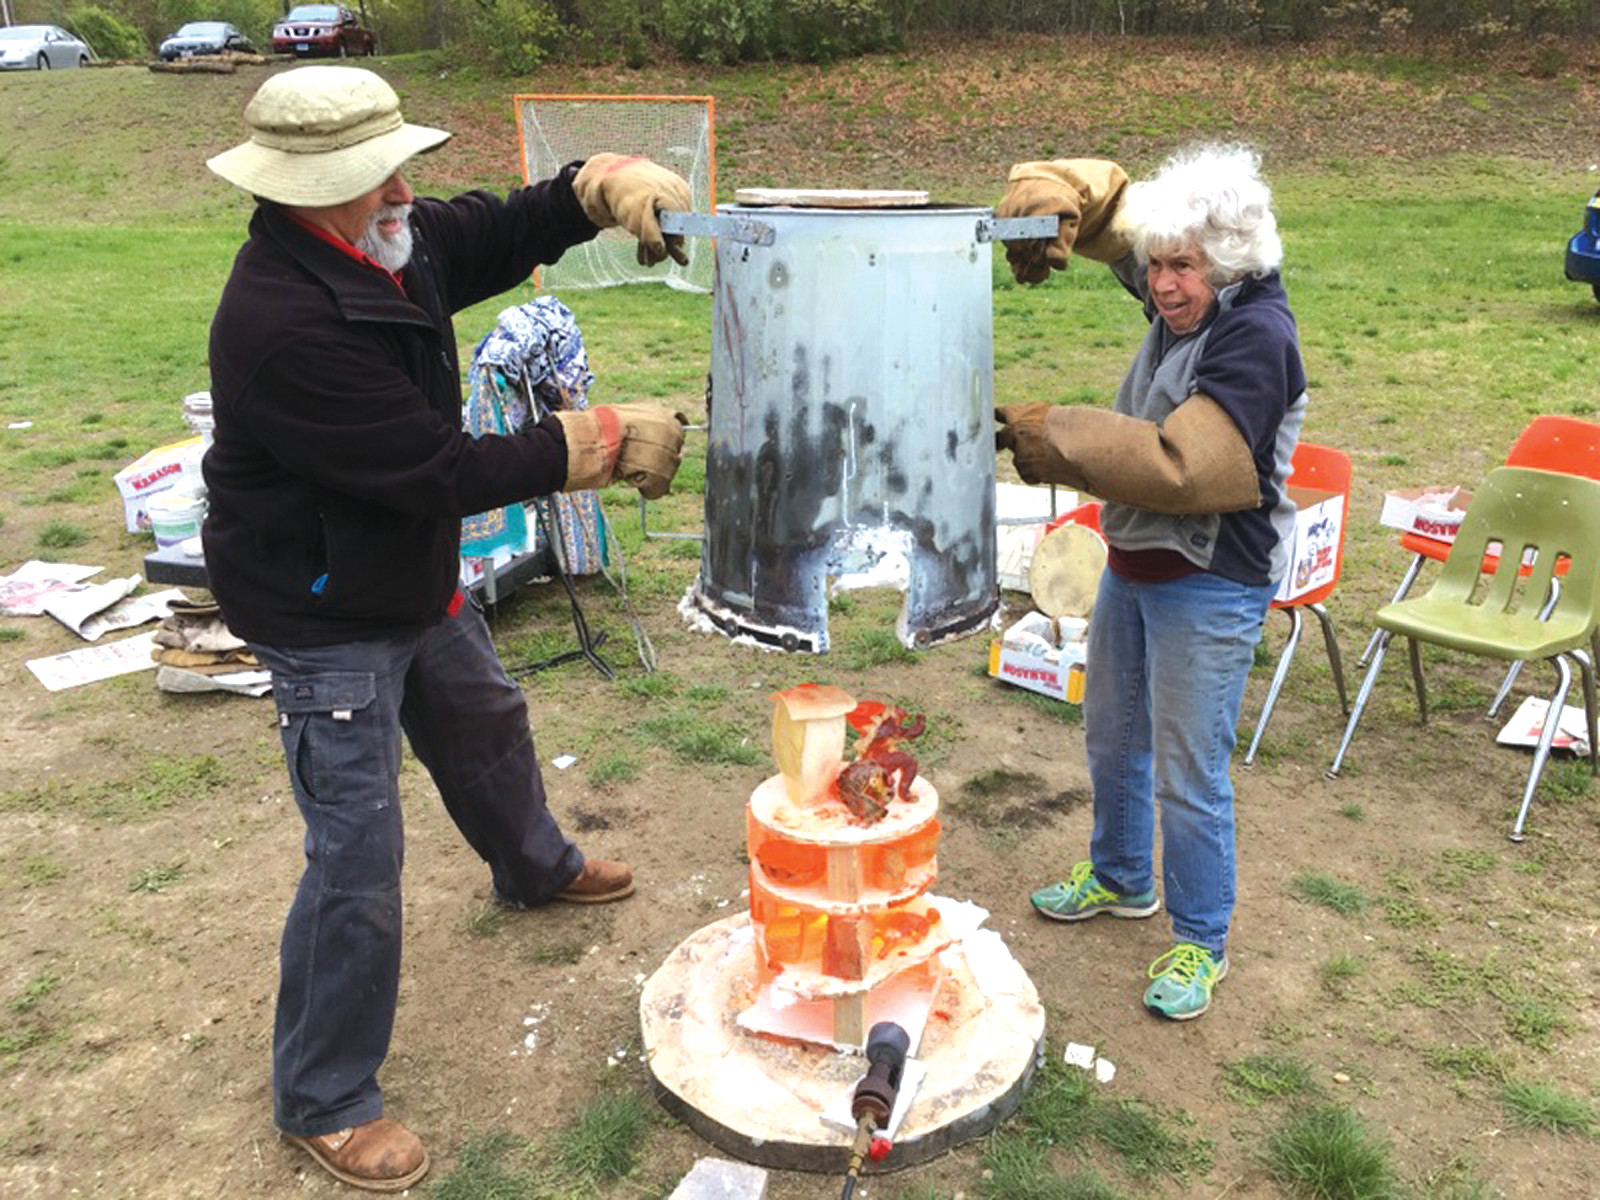 PIPING HOT: Artist Kate Champa needed assistance to lift the outer kiln cover to expose the still red hot student pieces of raku art.